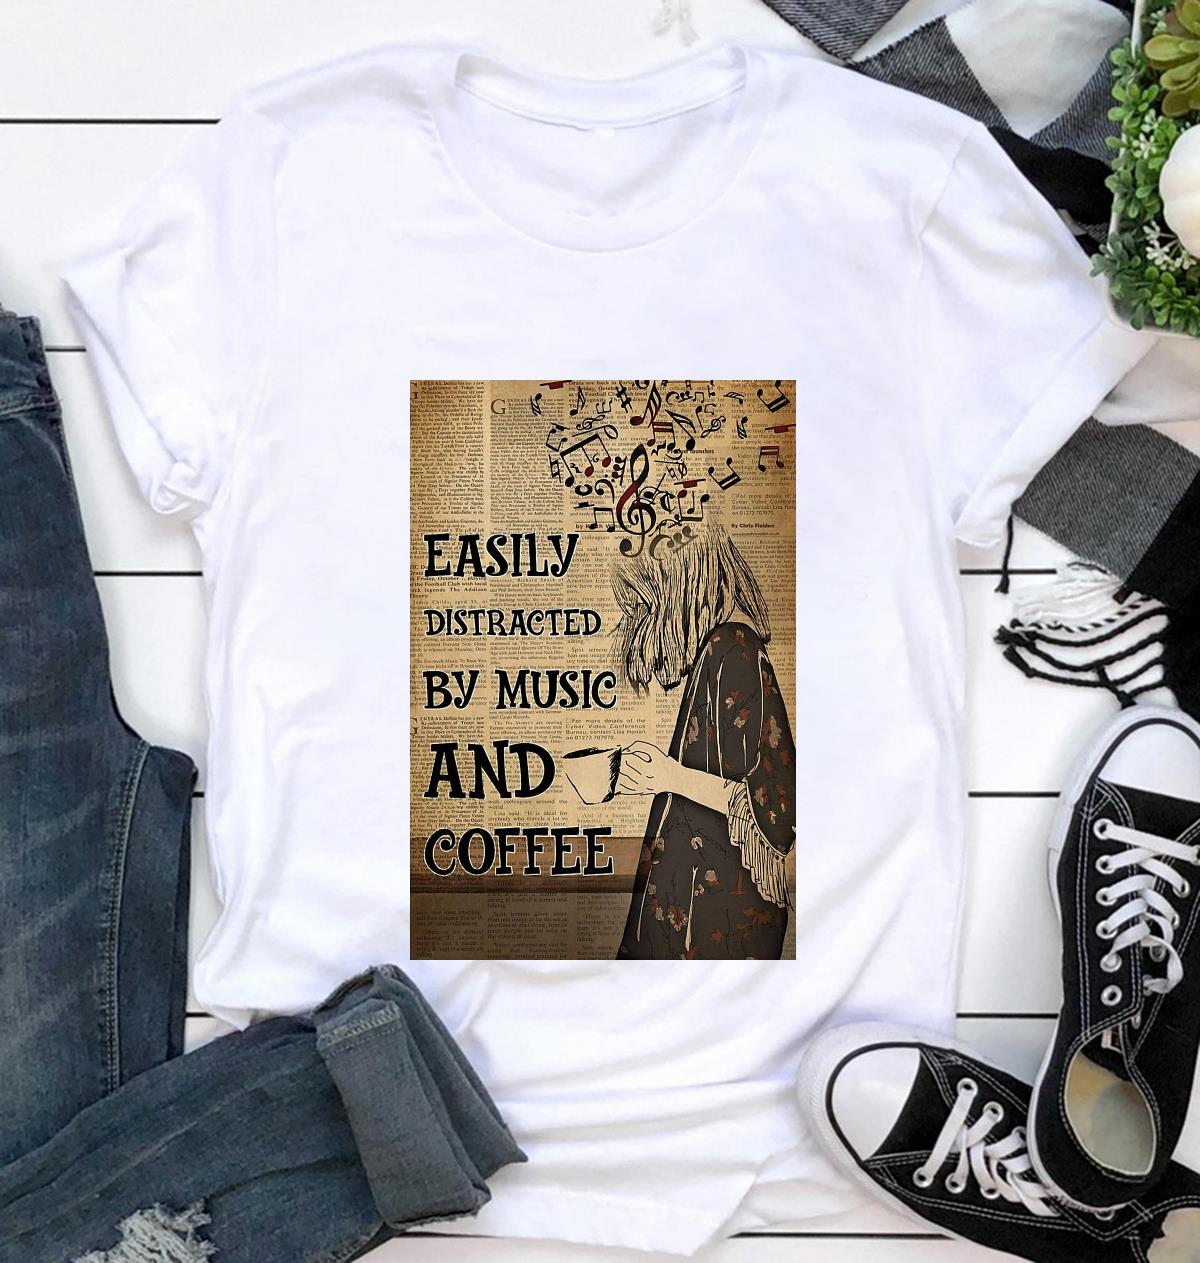 Easily distracted by music and coffee vertical poster canvas t-shirt